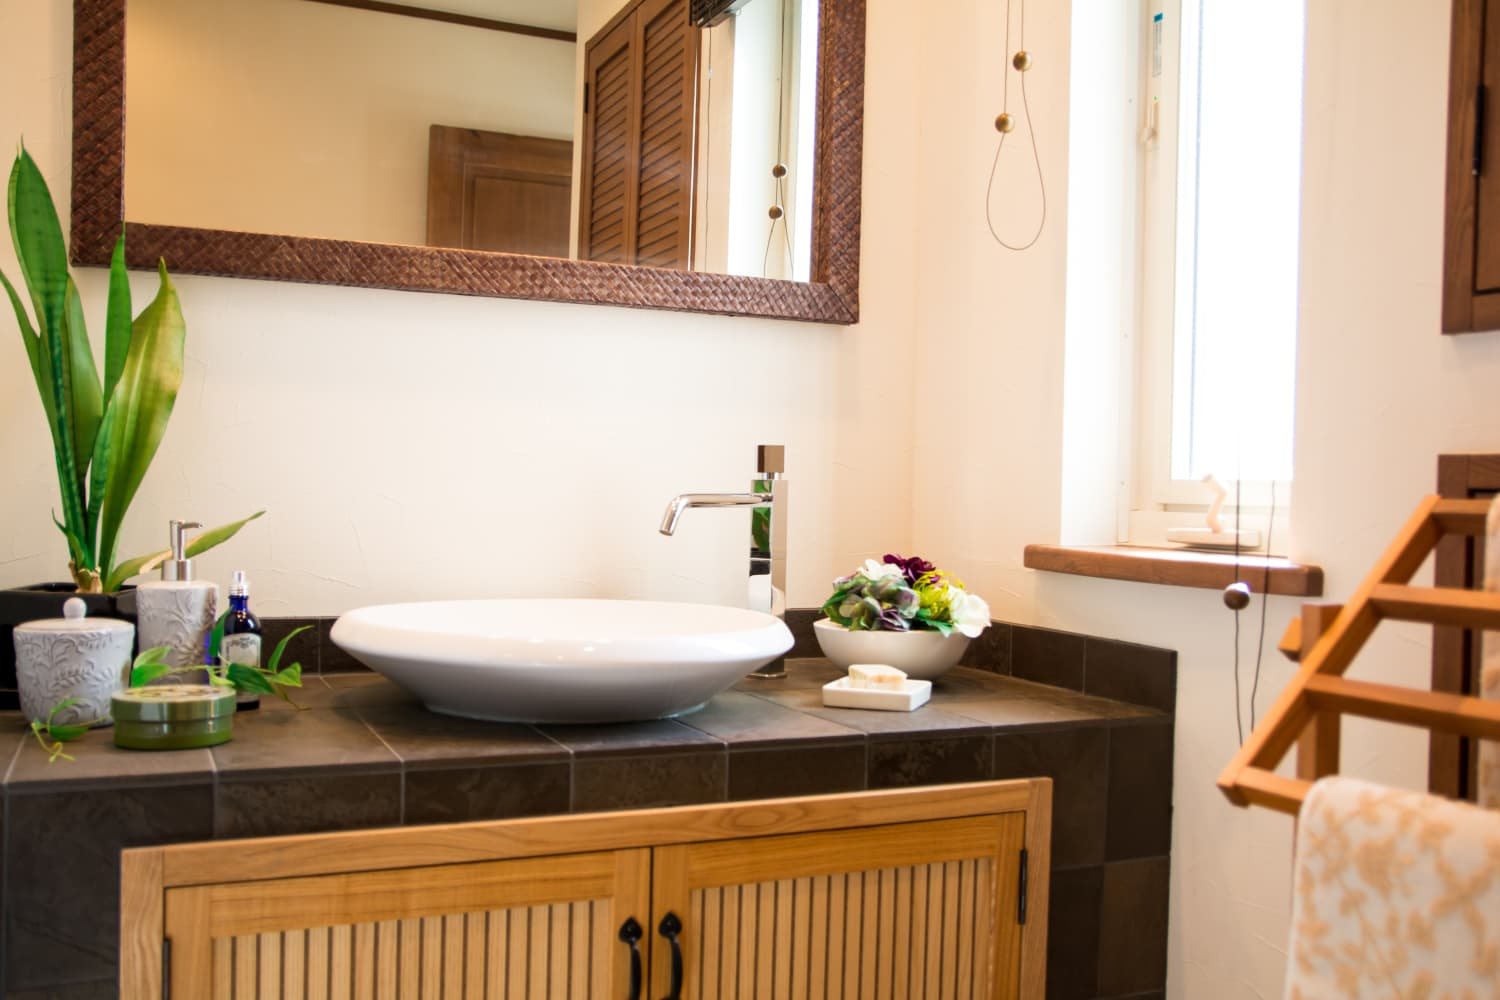 3 Things You Don't Need on Your Bathroom Counter, According to Home Stagers